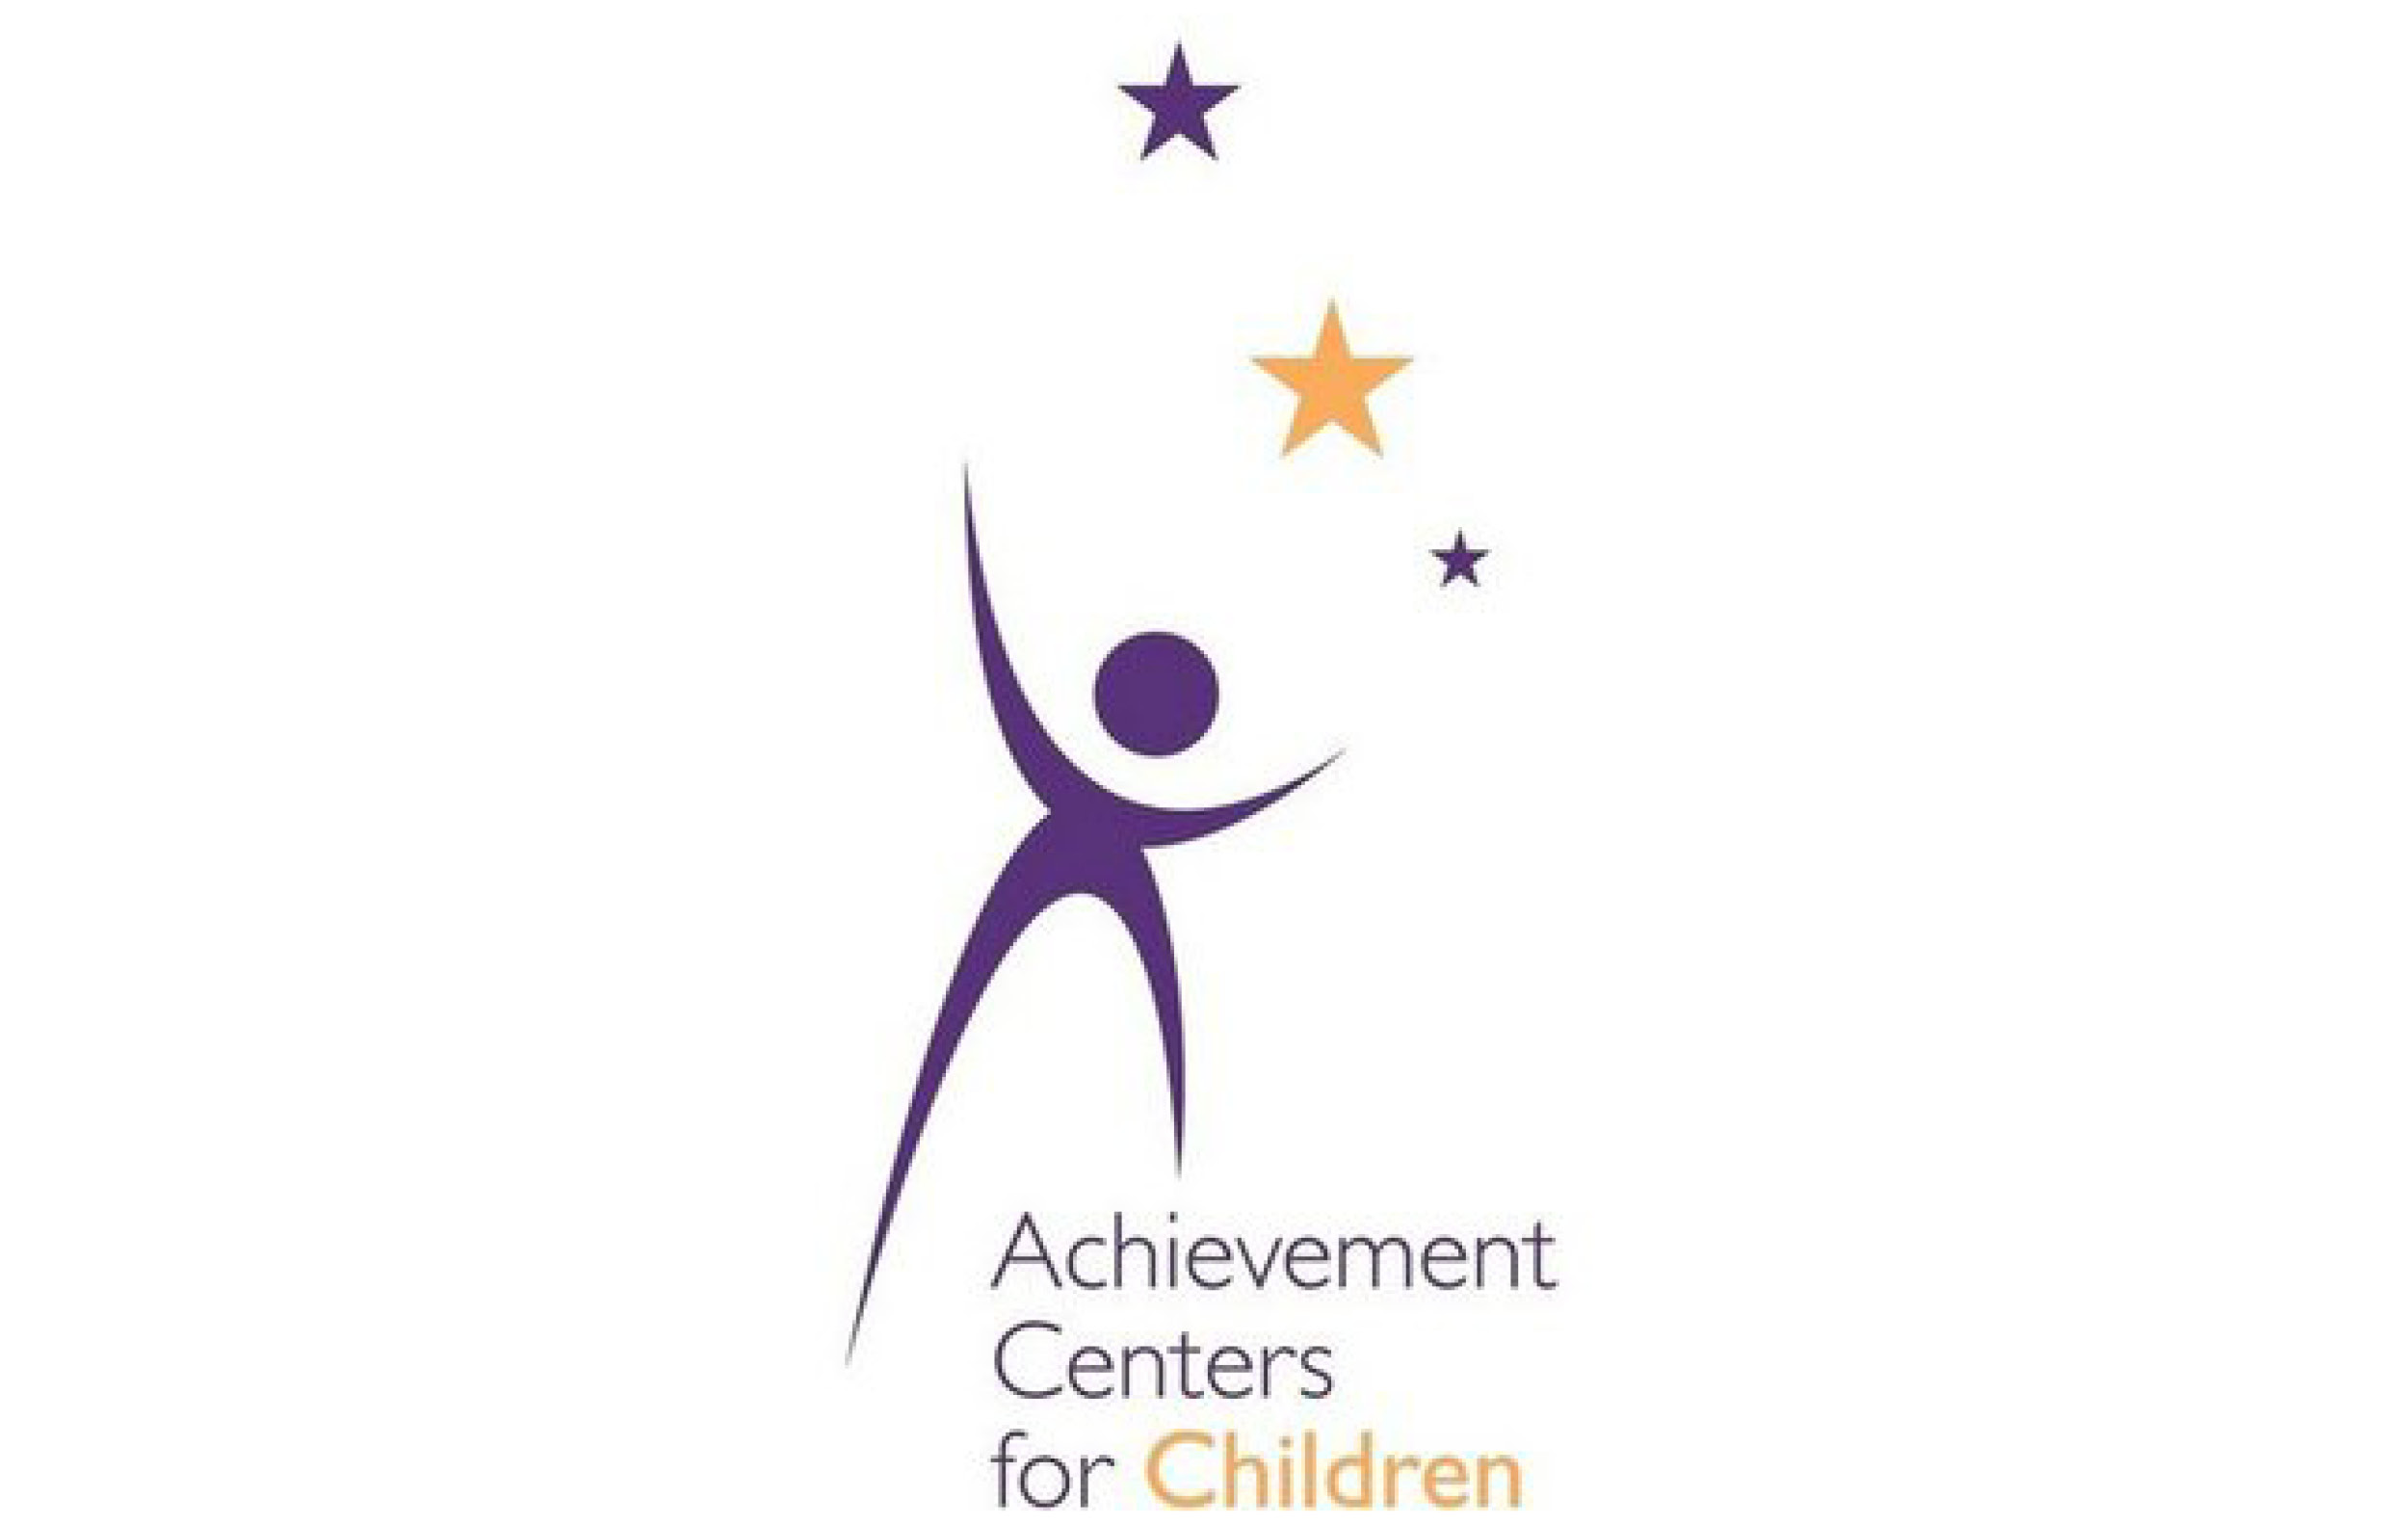 Achievement Centers for Children b